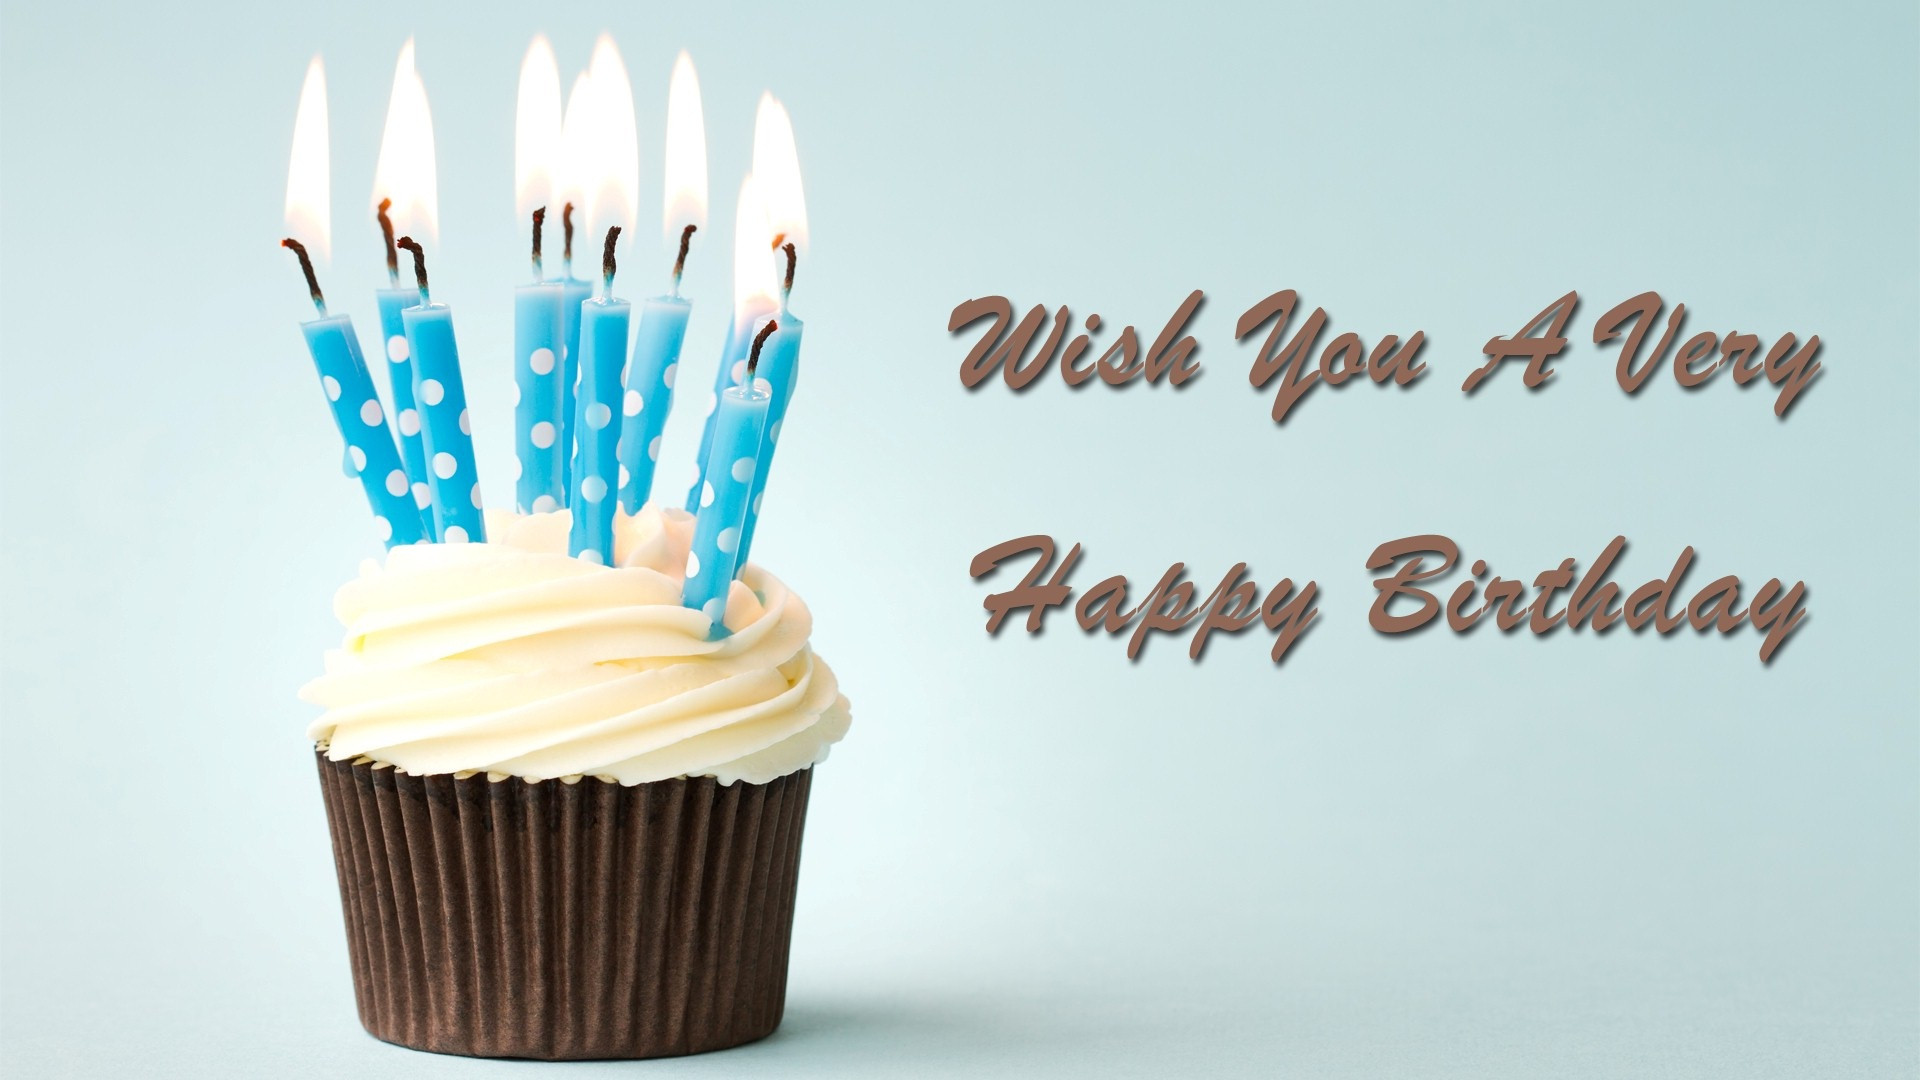 Best ideas about Wish You Happy Birthday . Save or Pin Wish you very happy birthday Now.